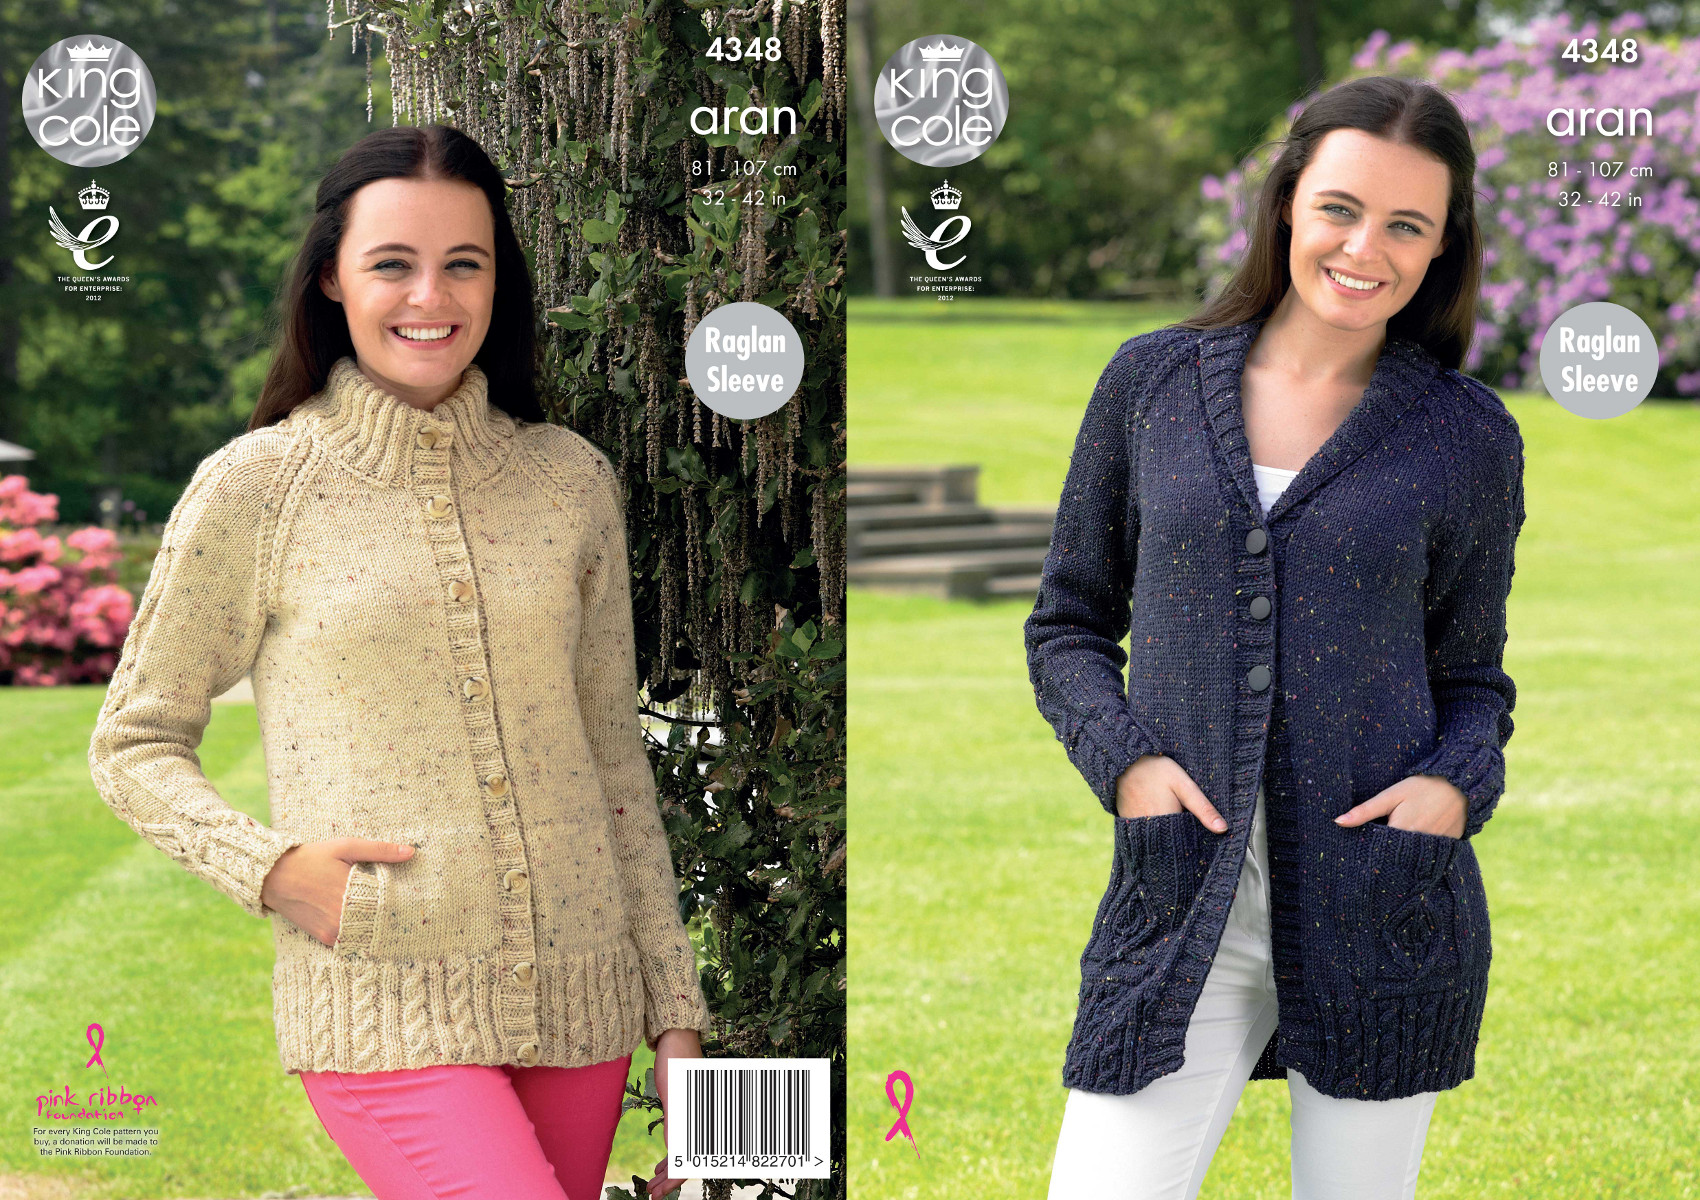 Knitting Jumper Pattern : Womens cable ribbed detail cardigans knitting pattern king cole